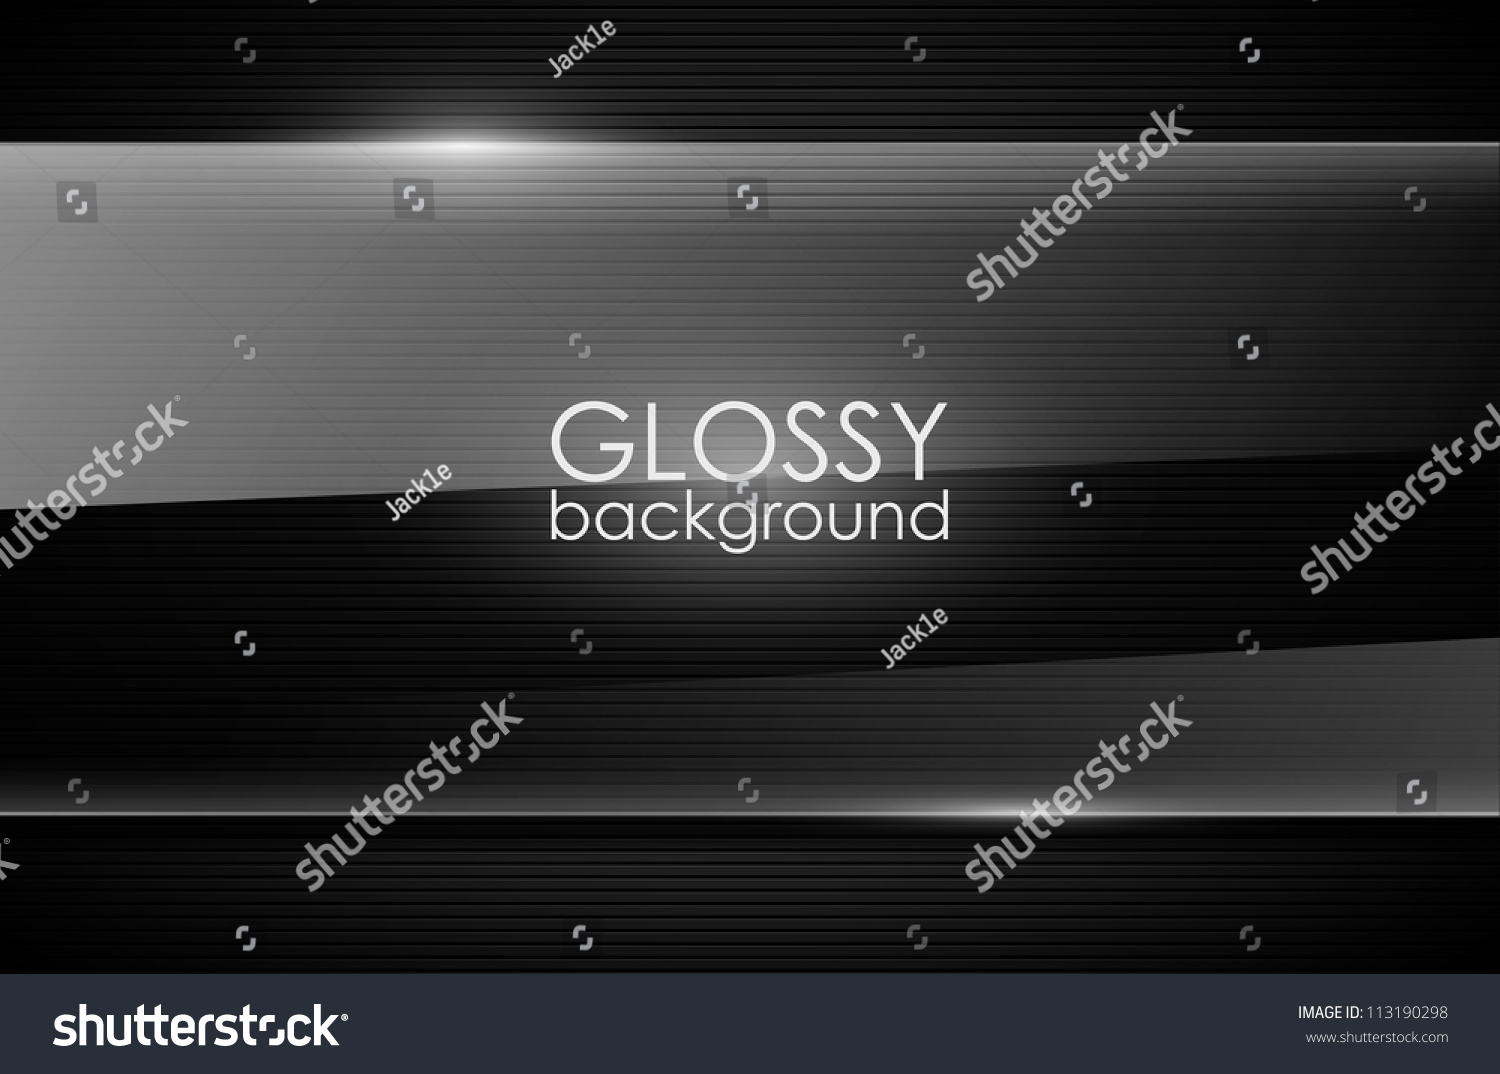 Vector Glossy Background Stock Vector 113190298 - Shutterstock